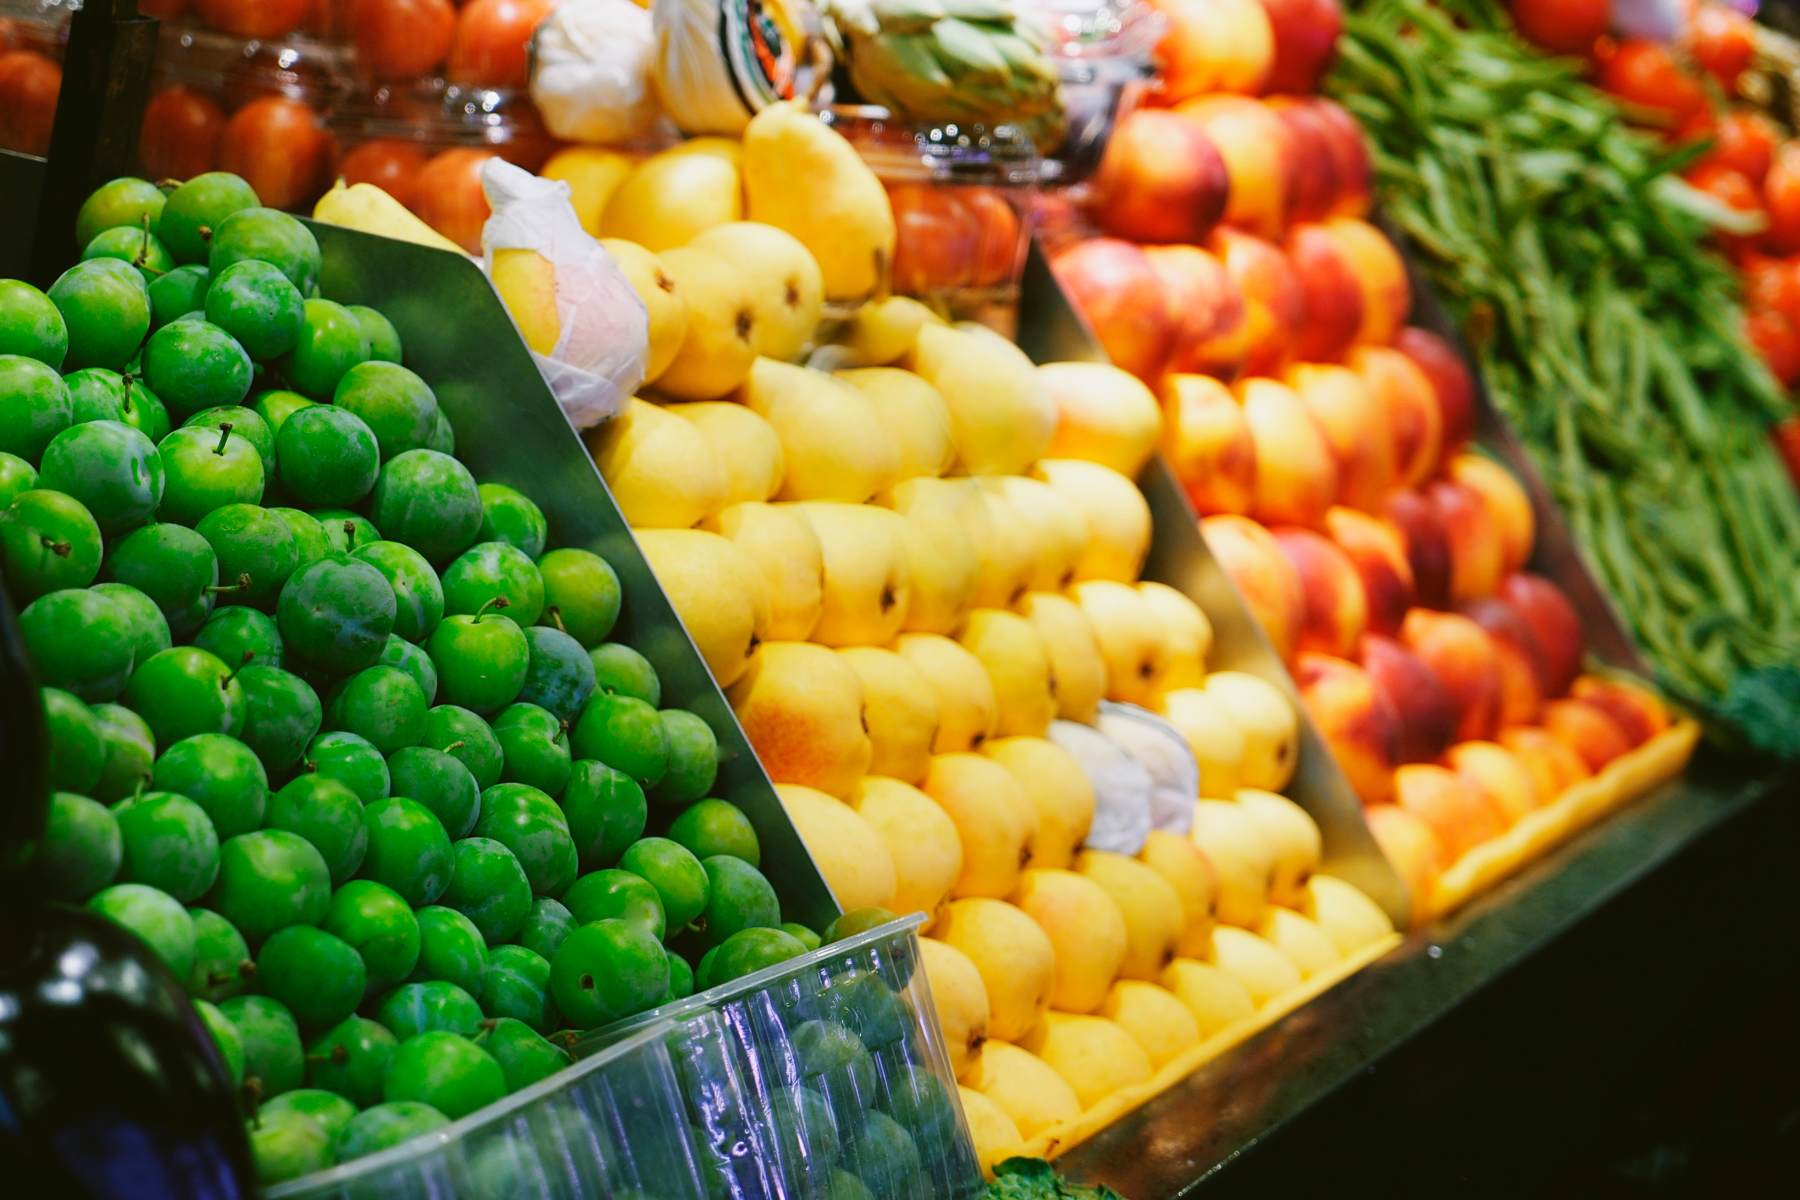 Different fruit and vegetables in a market